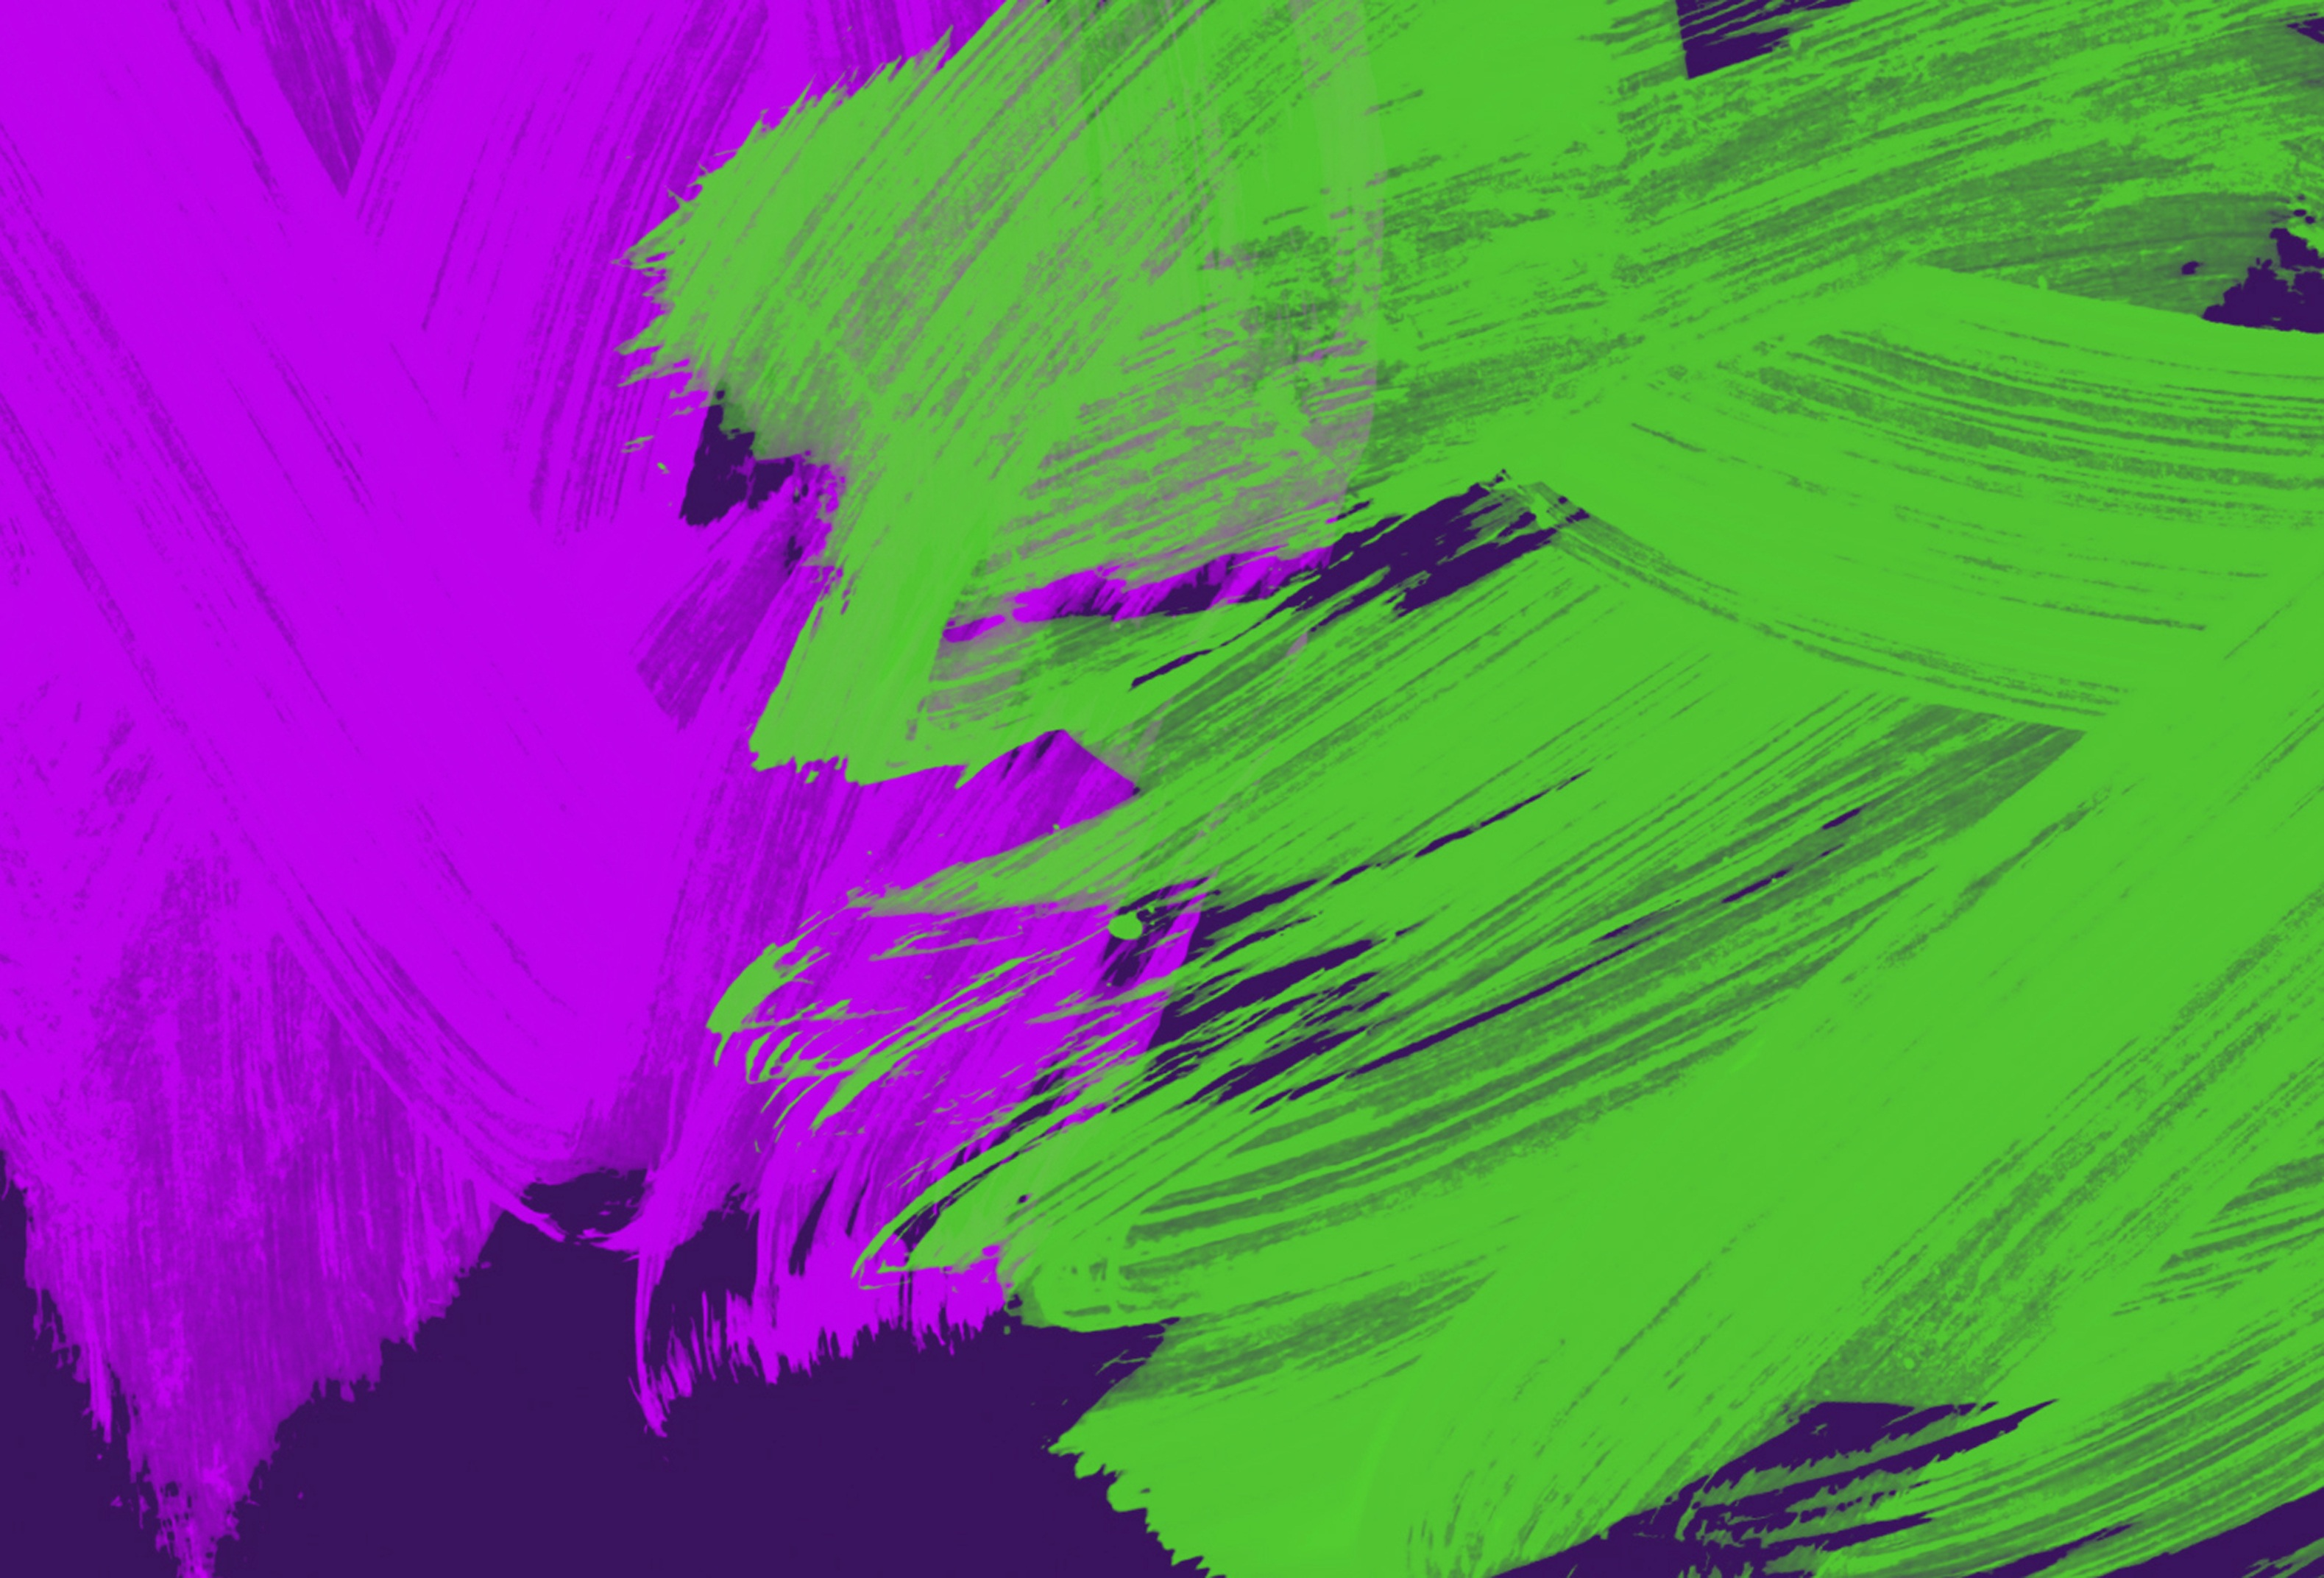 Background with neon purple and green touches free image